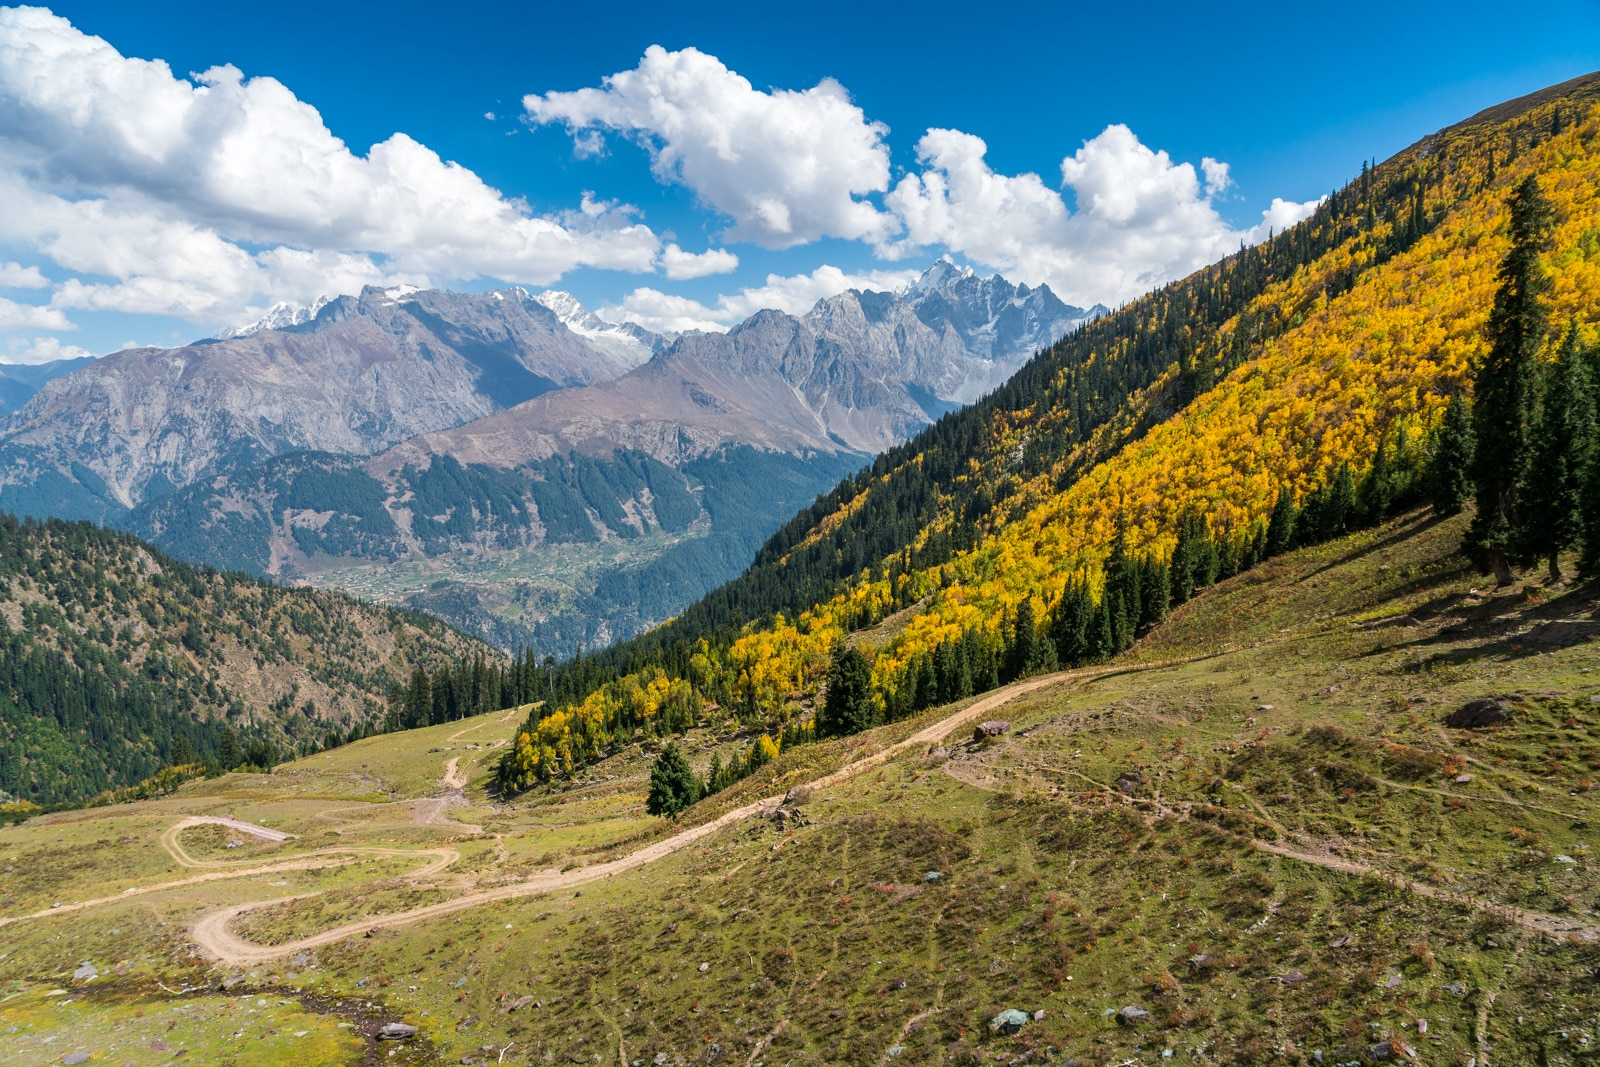 Trees and mountains in autumn in Swat Valley, Khyber Pakhtunkhwa, Pakistan